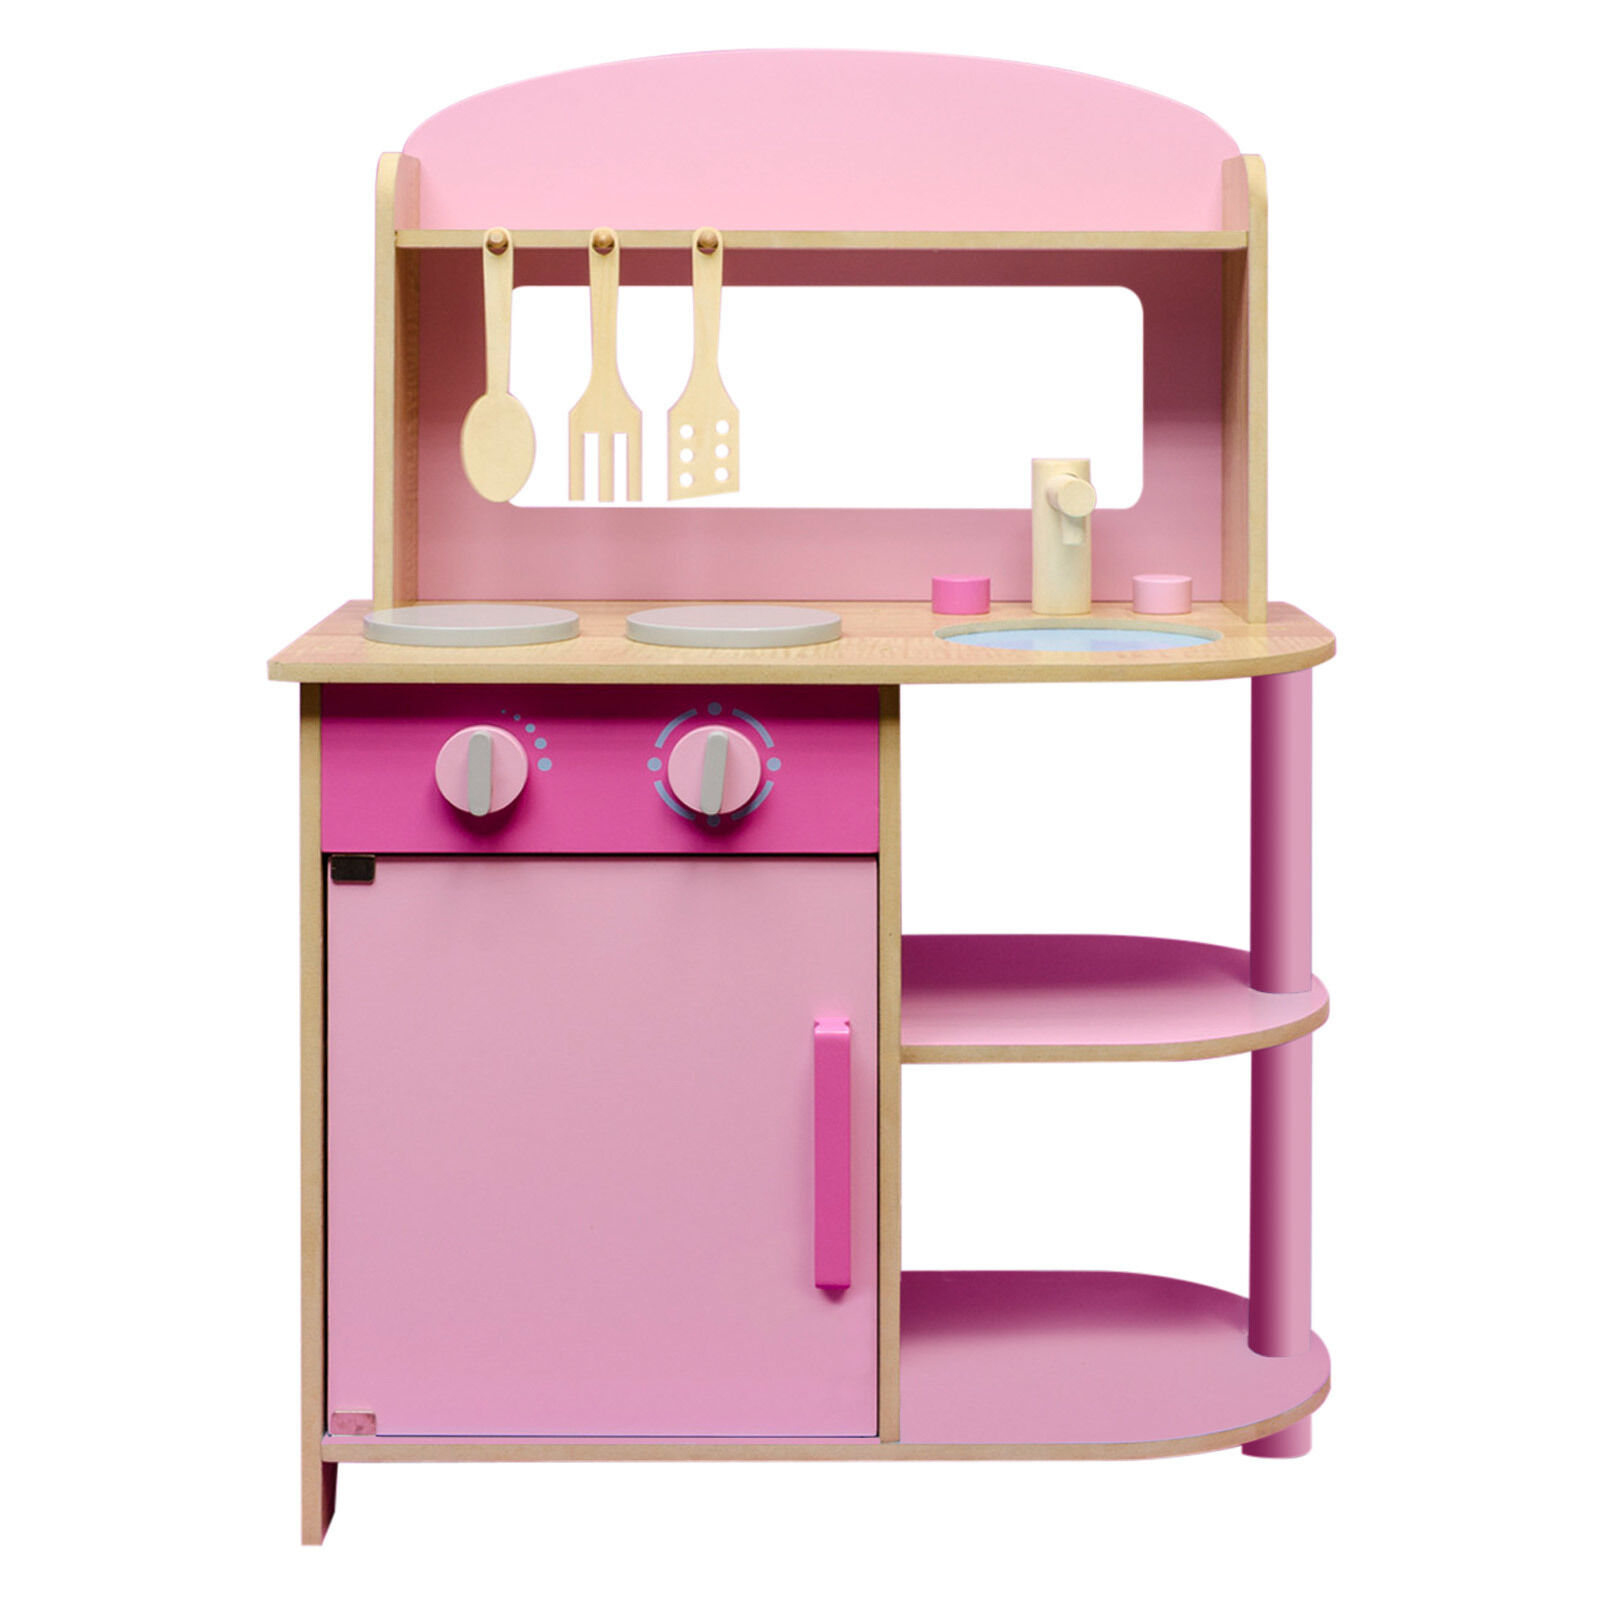 spielk che spielzeugk che kinderk che holzk che kinder k che aus holz rosa pink eur 37 99. Black Bedroom Furniture Sets. Home Design Ideas